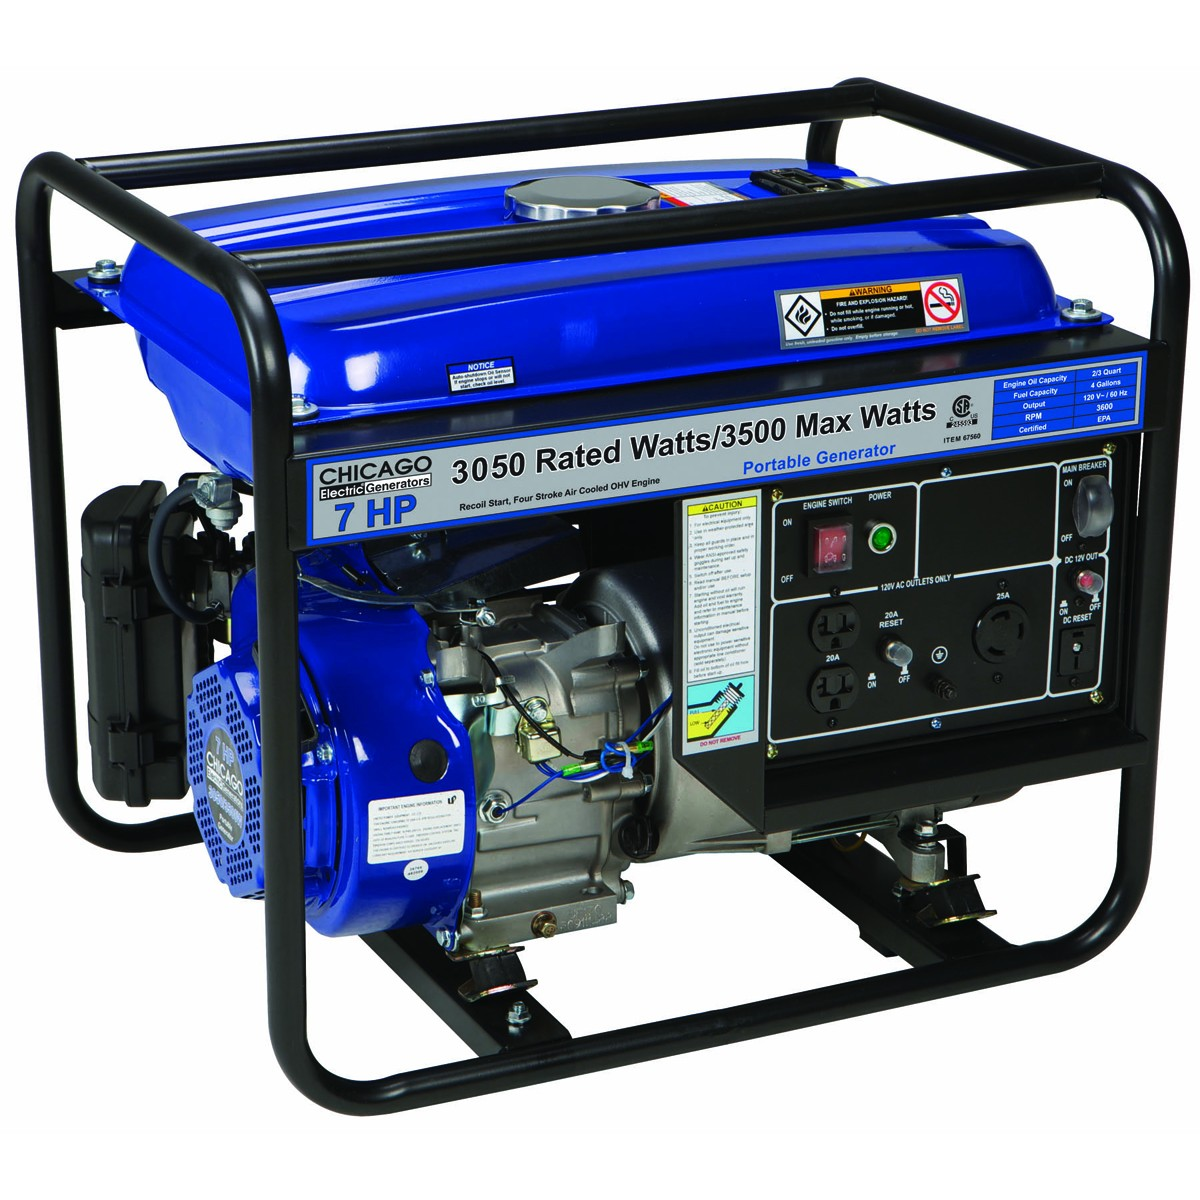 Hot Portable Generator Safety Tips From The Pros W